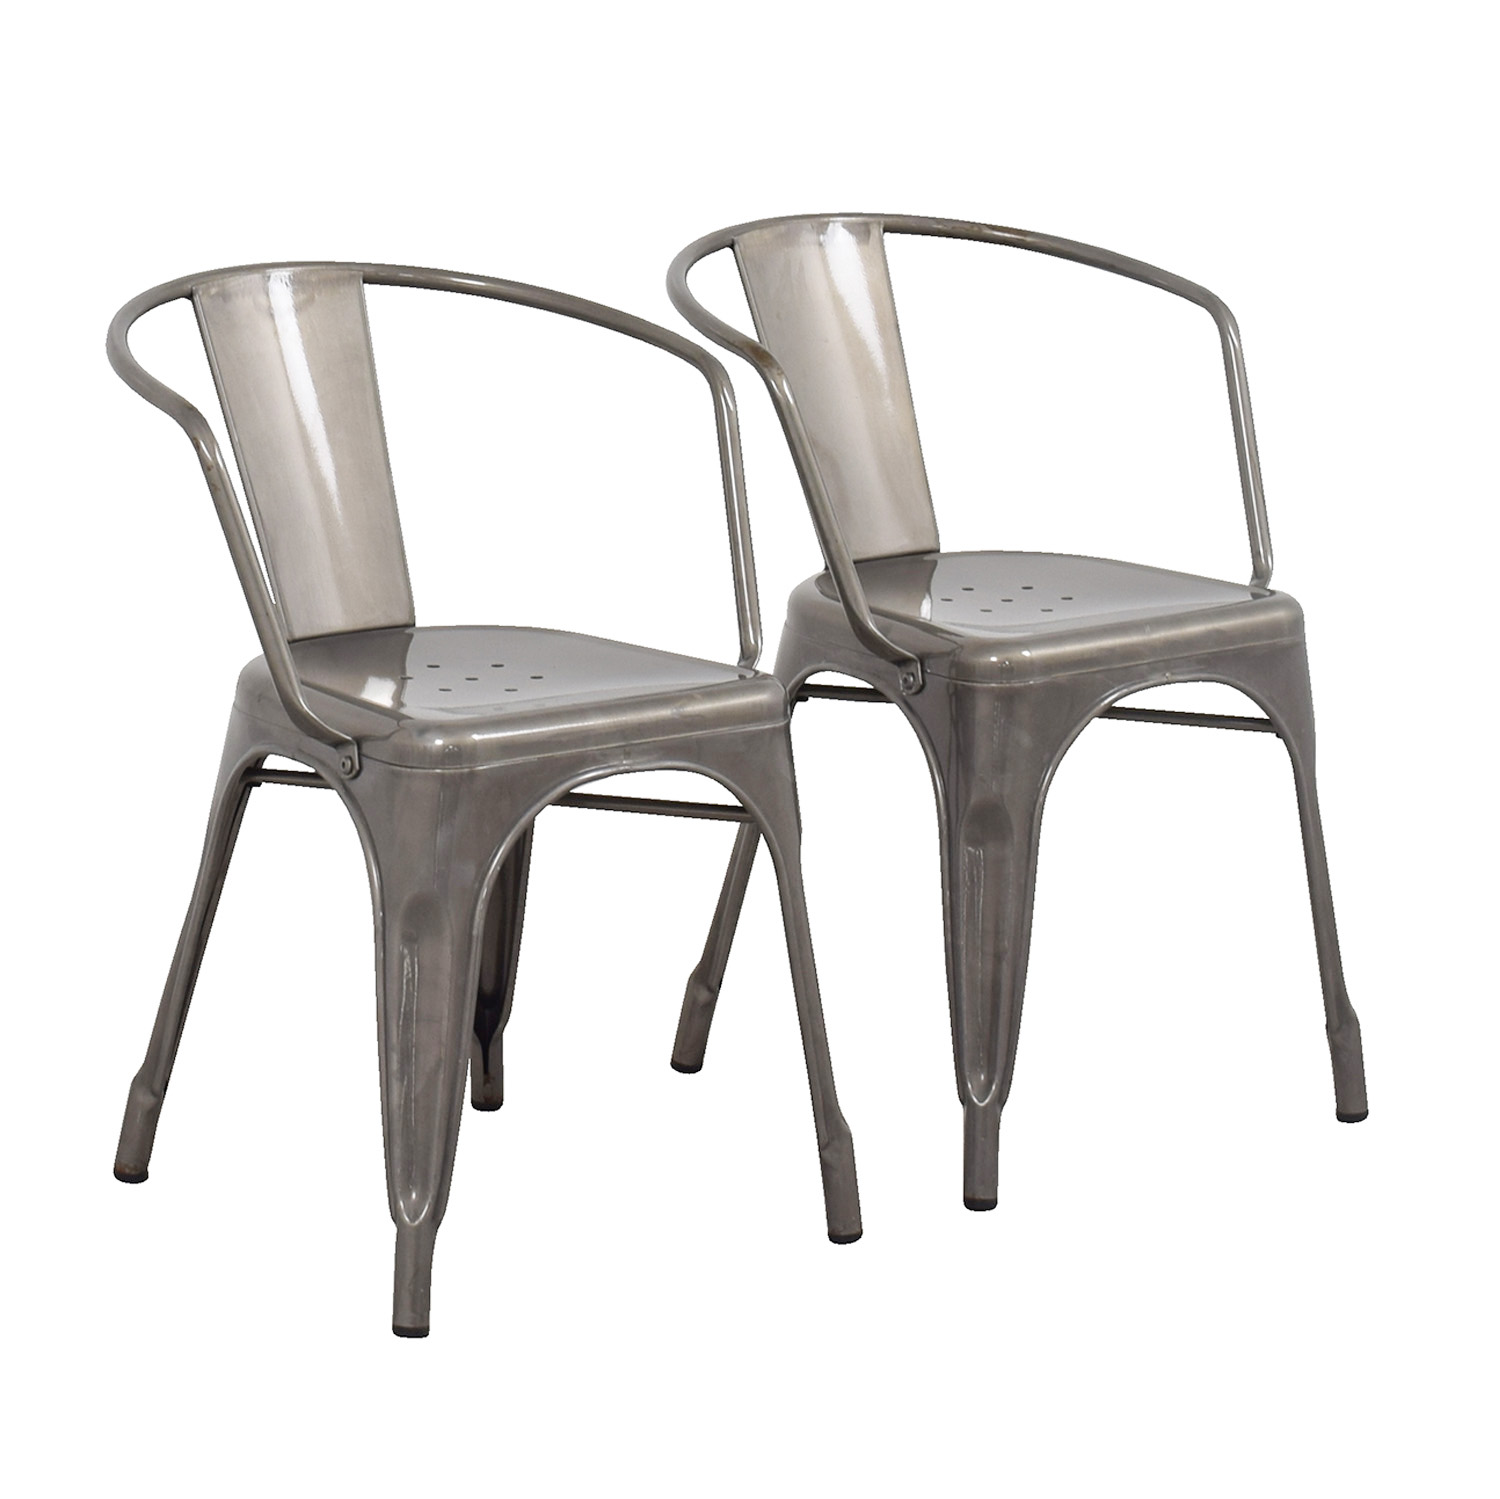 Chairs From Target 70 Off Target Target Carlisle Metal Dining Chair Chairs